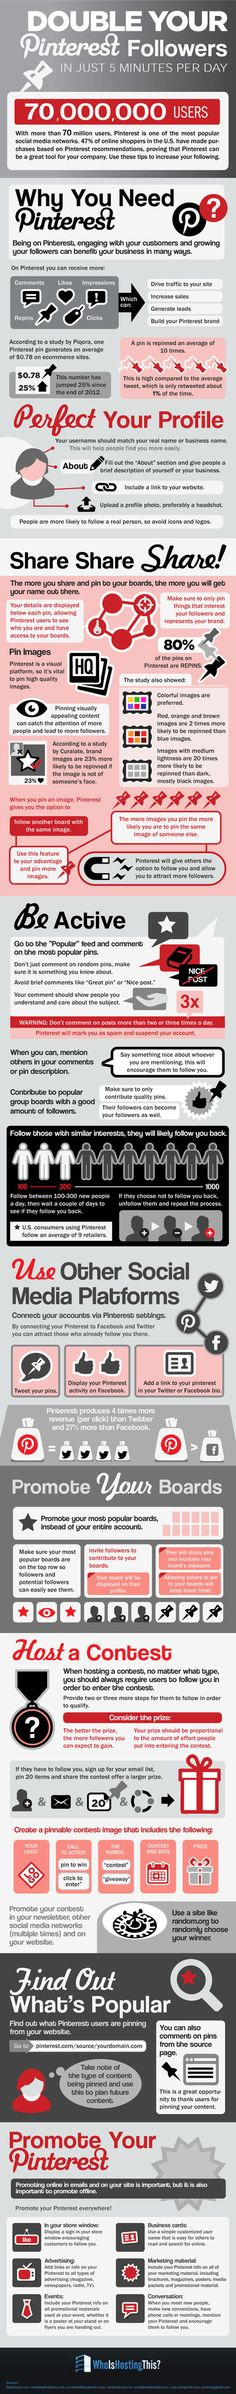 Double your Pinterest followers, an infographic: http://hosting.ber-art.nl/double-pinterest-followers-infographic /@BerriePelser - #Pin